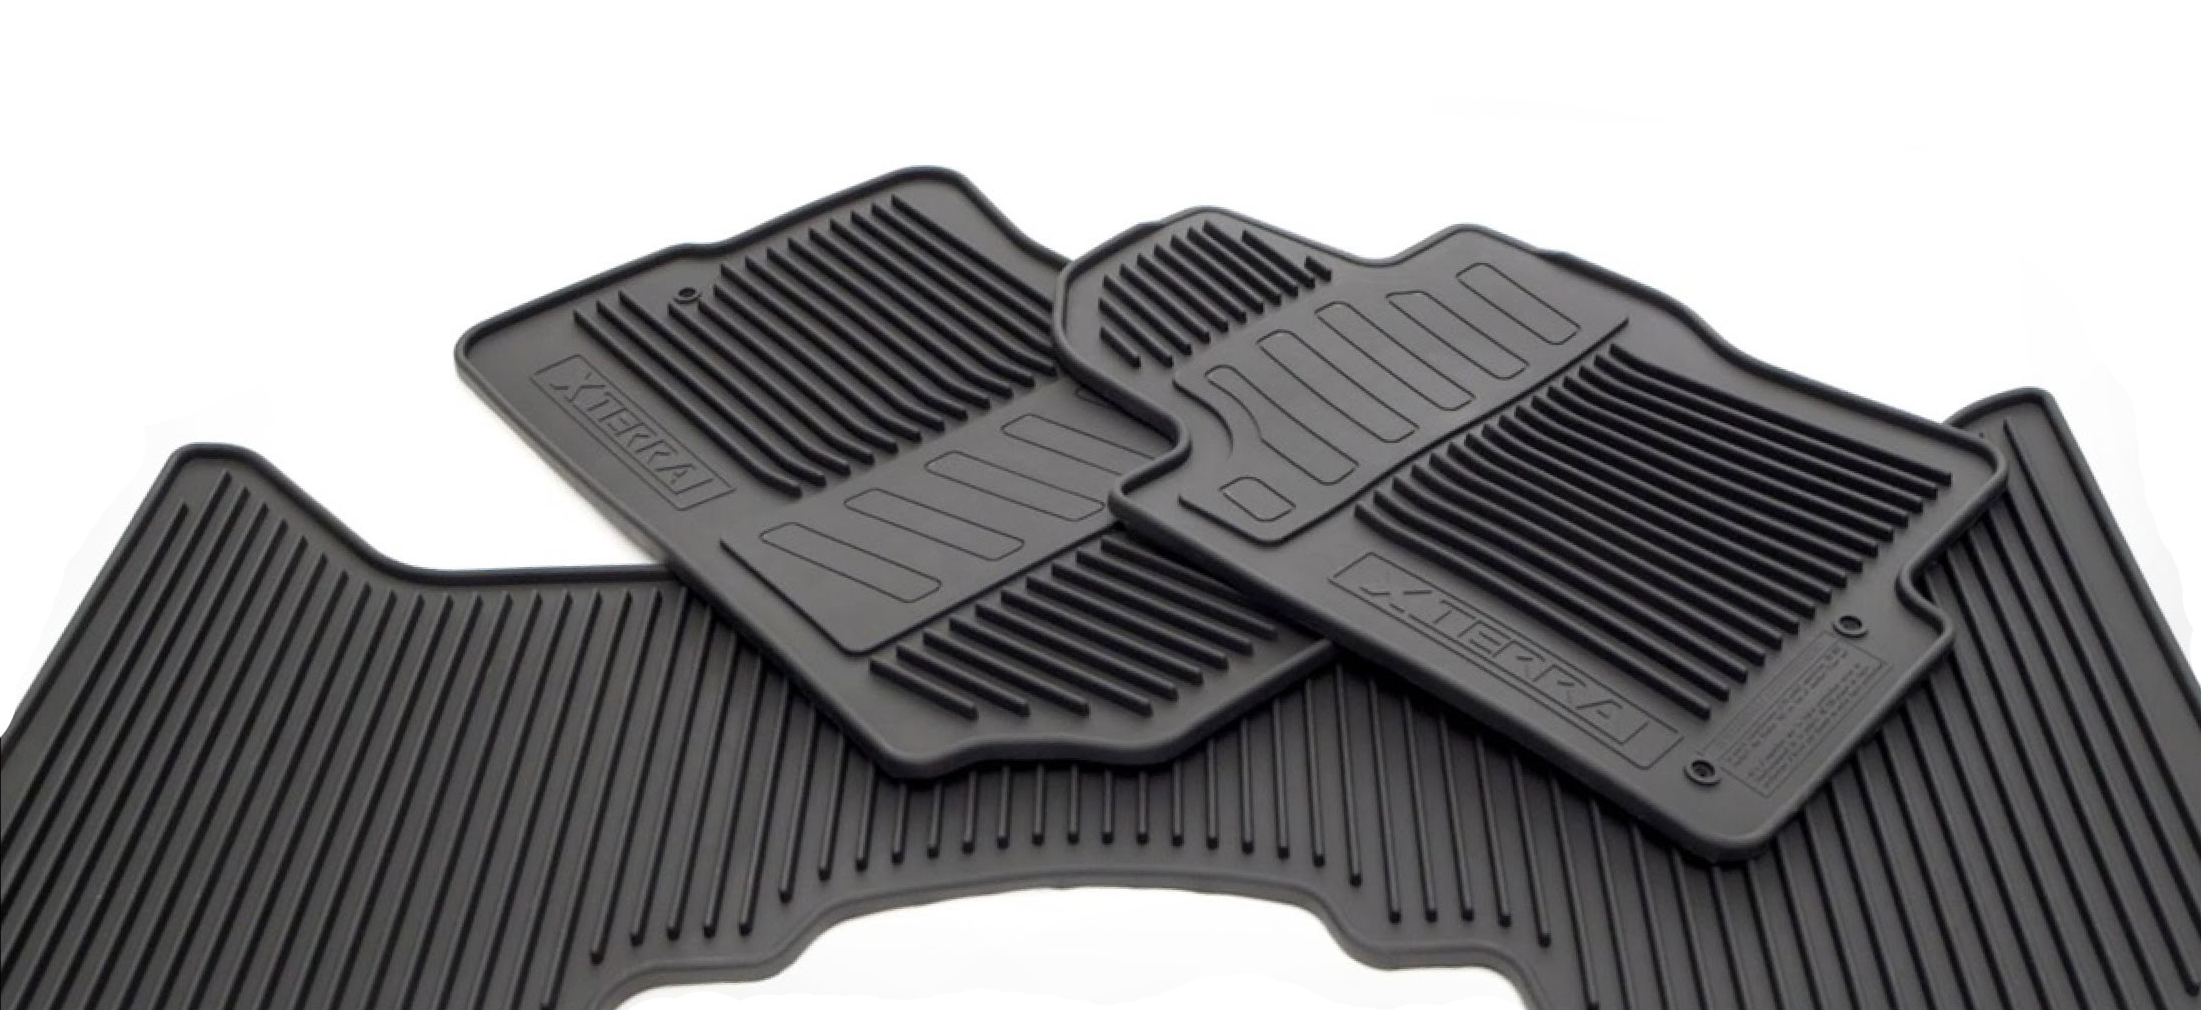 x rv stunning awesome co floor of tulum floors mat outdoor patio mats rugs reversible smsender